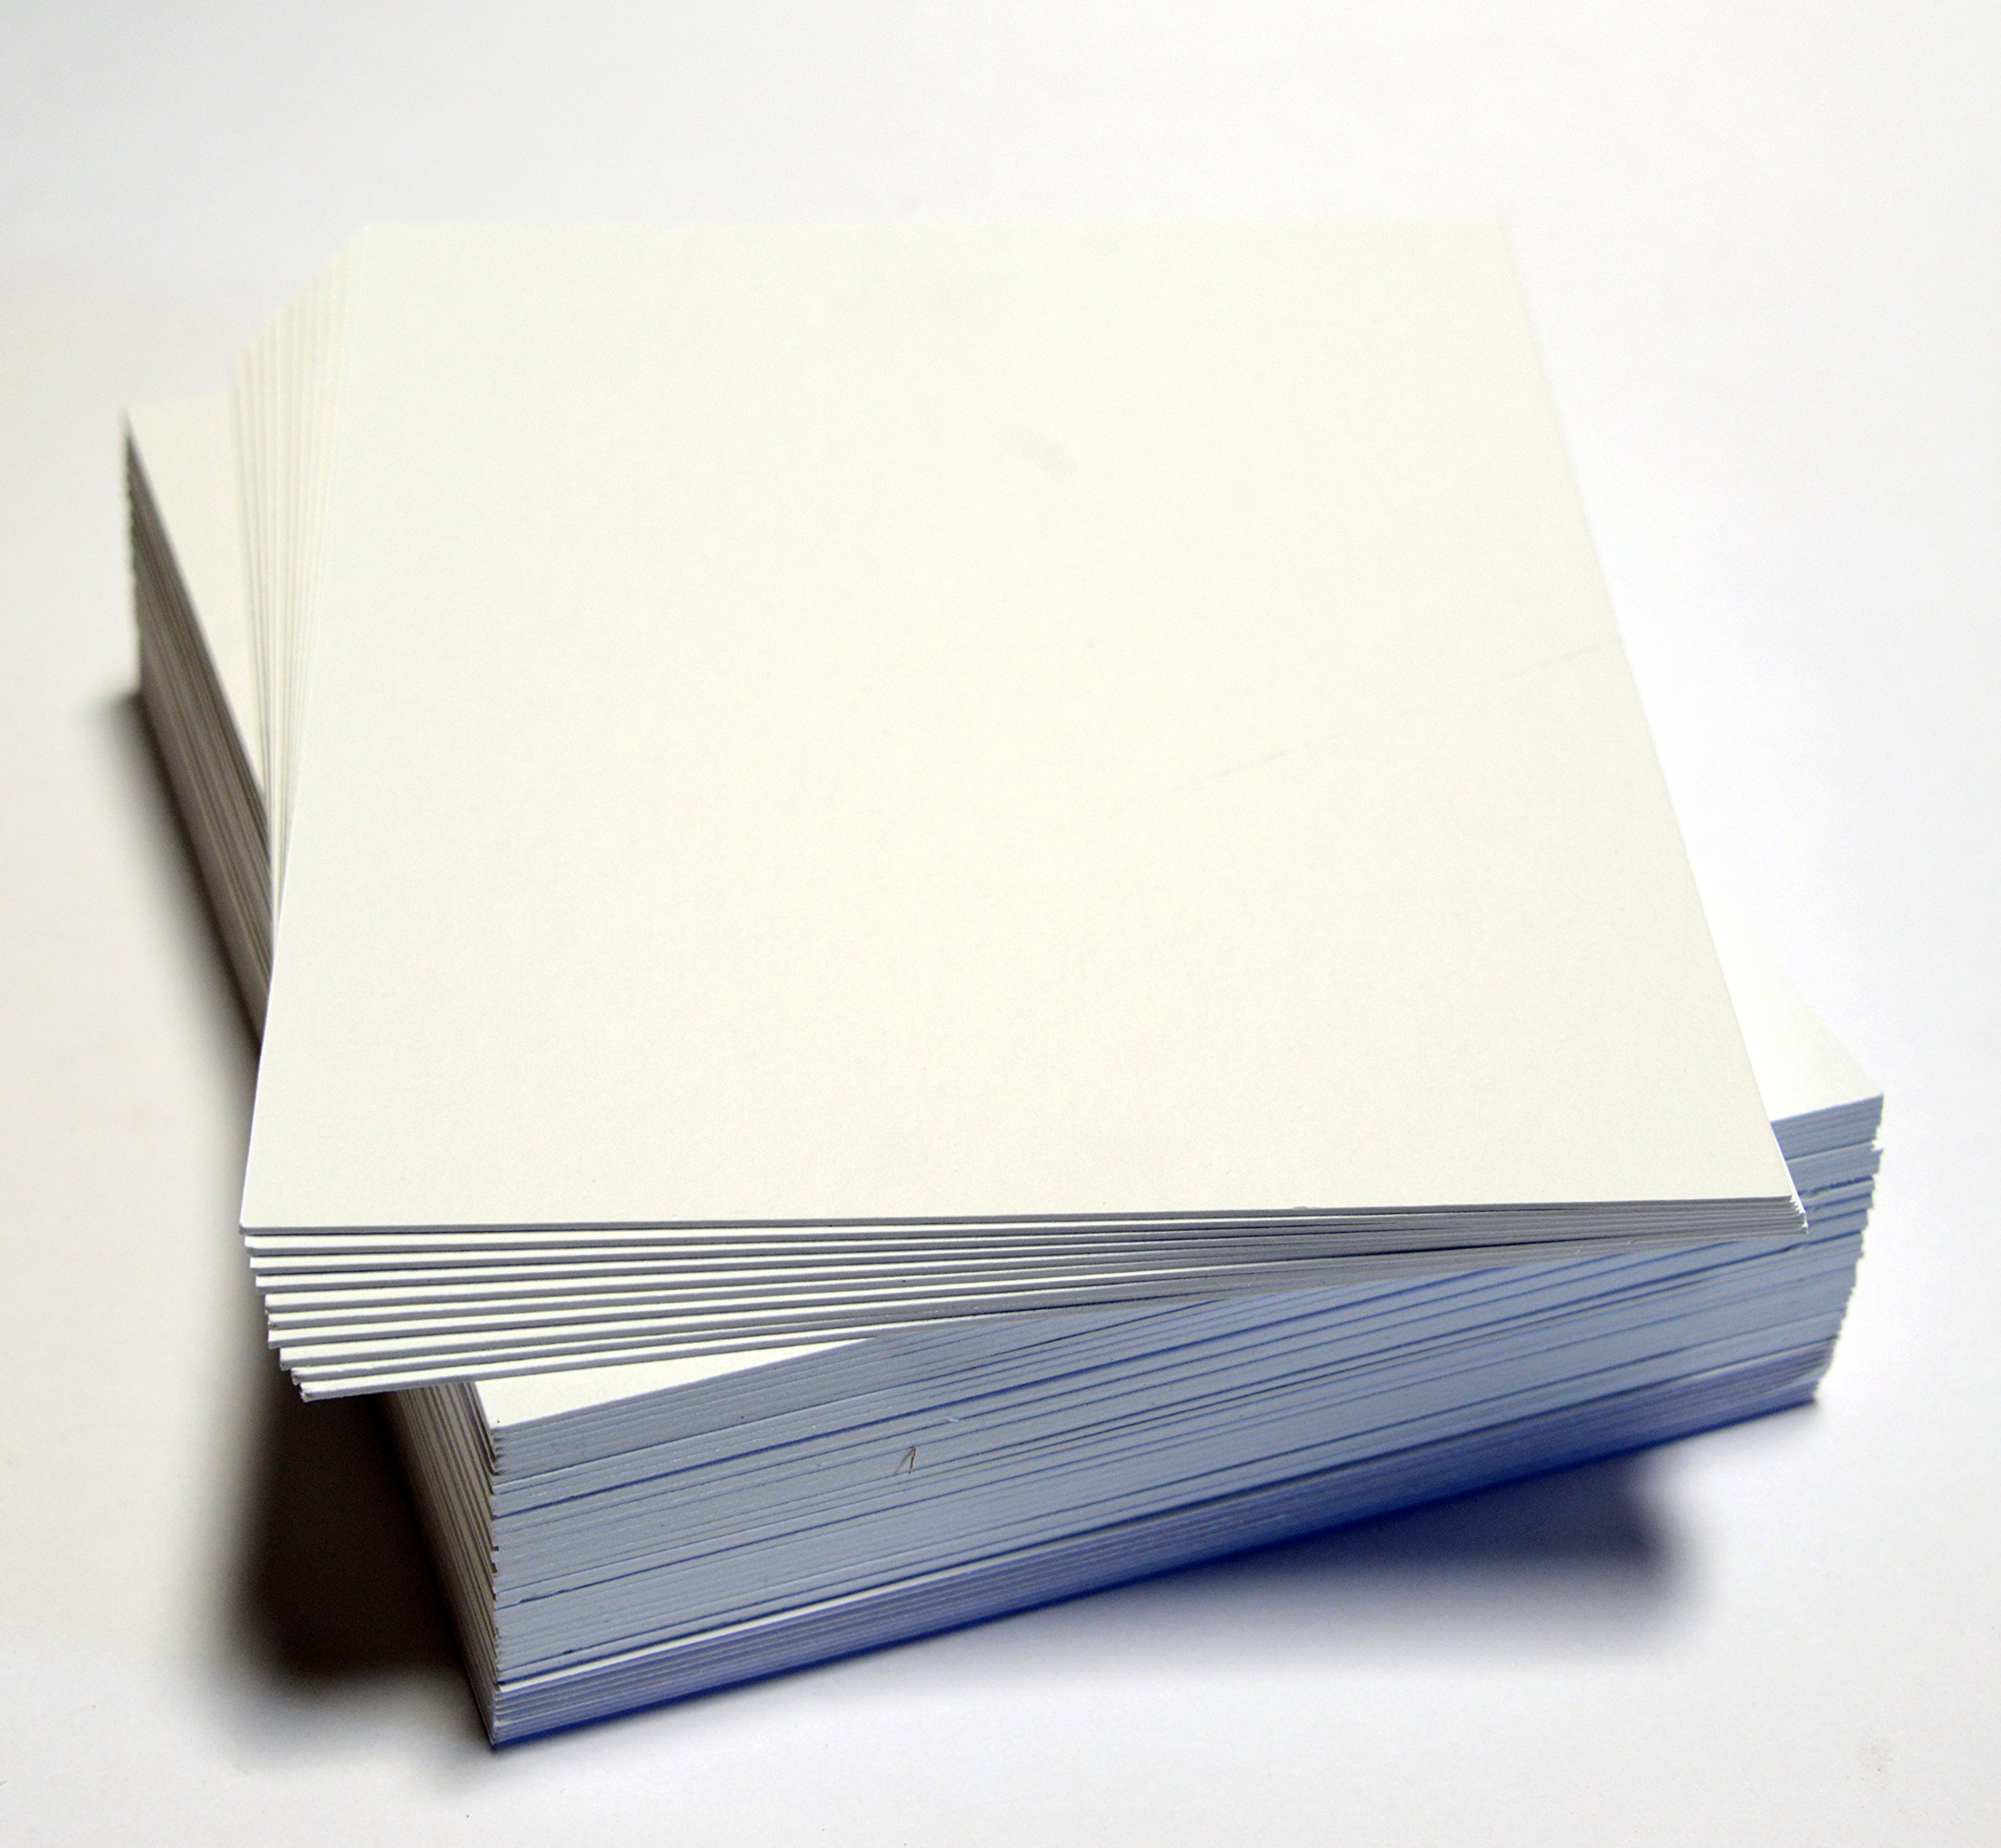 topseller100, Pack of 50 sheets 16x20 UNCUT mat matboard WHITE Color